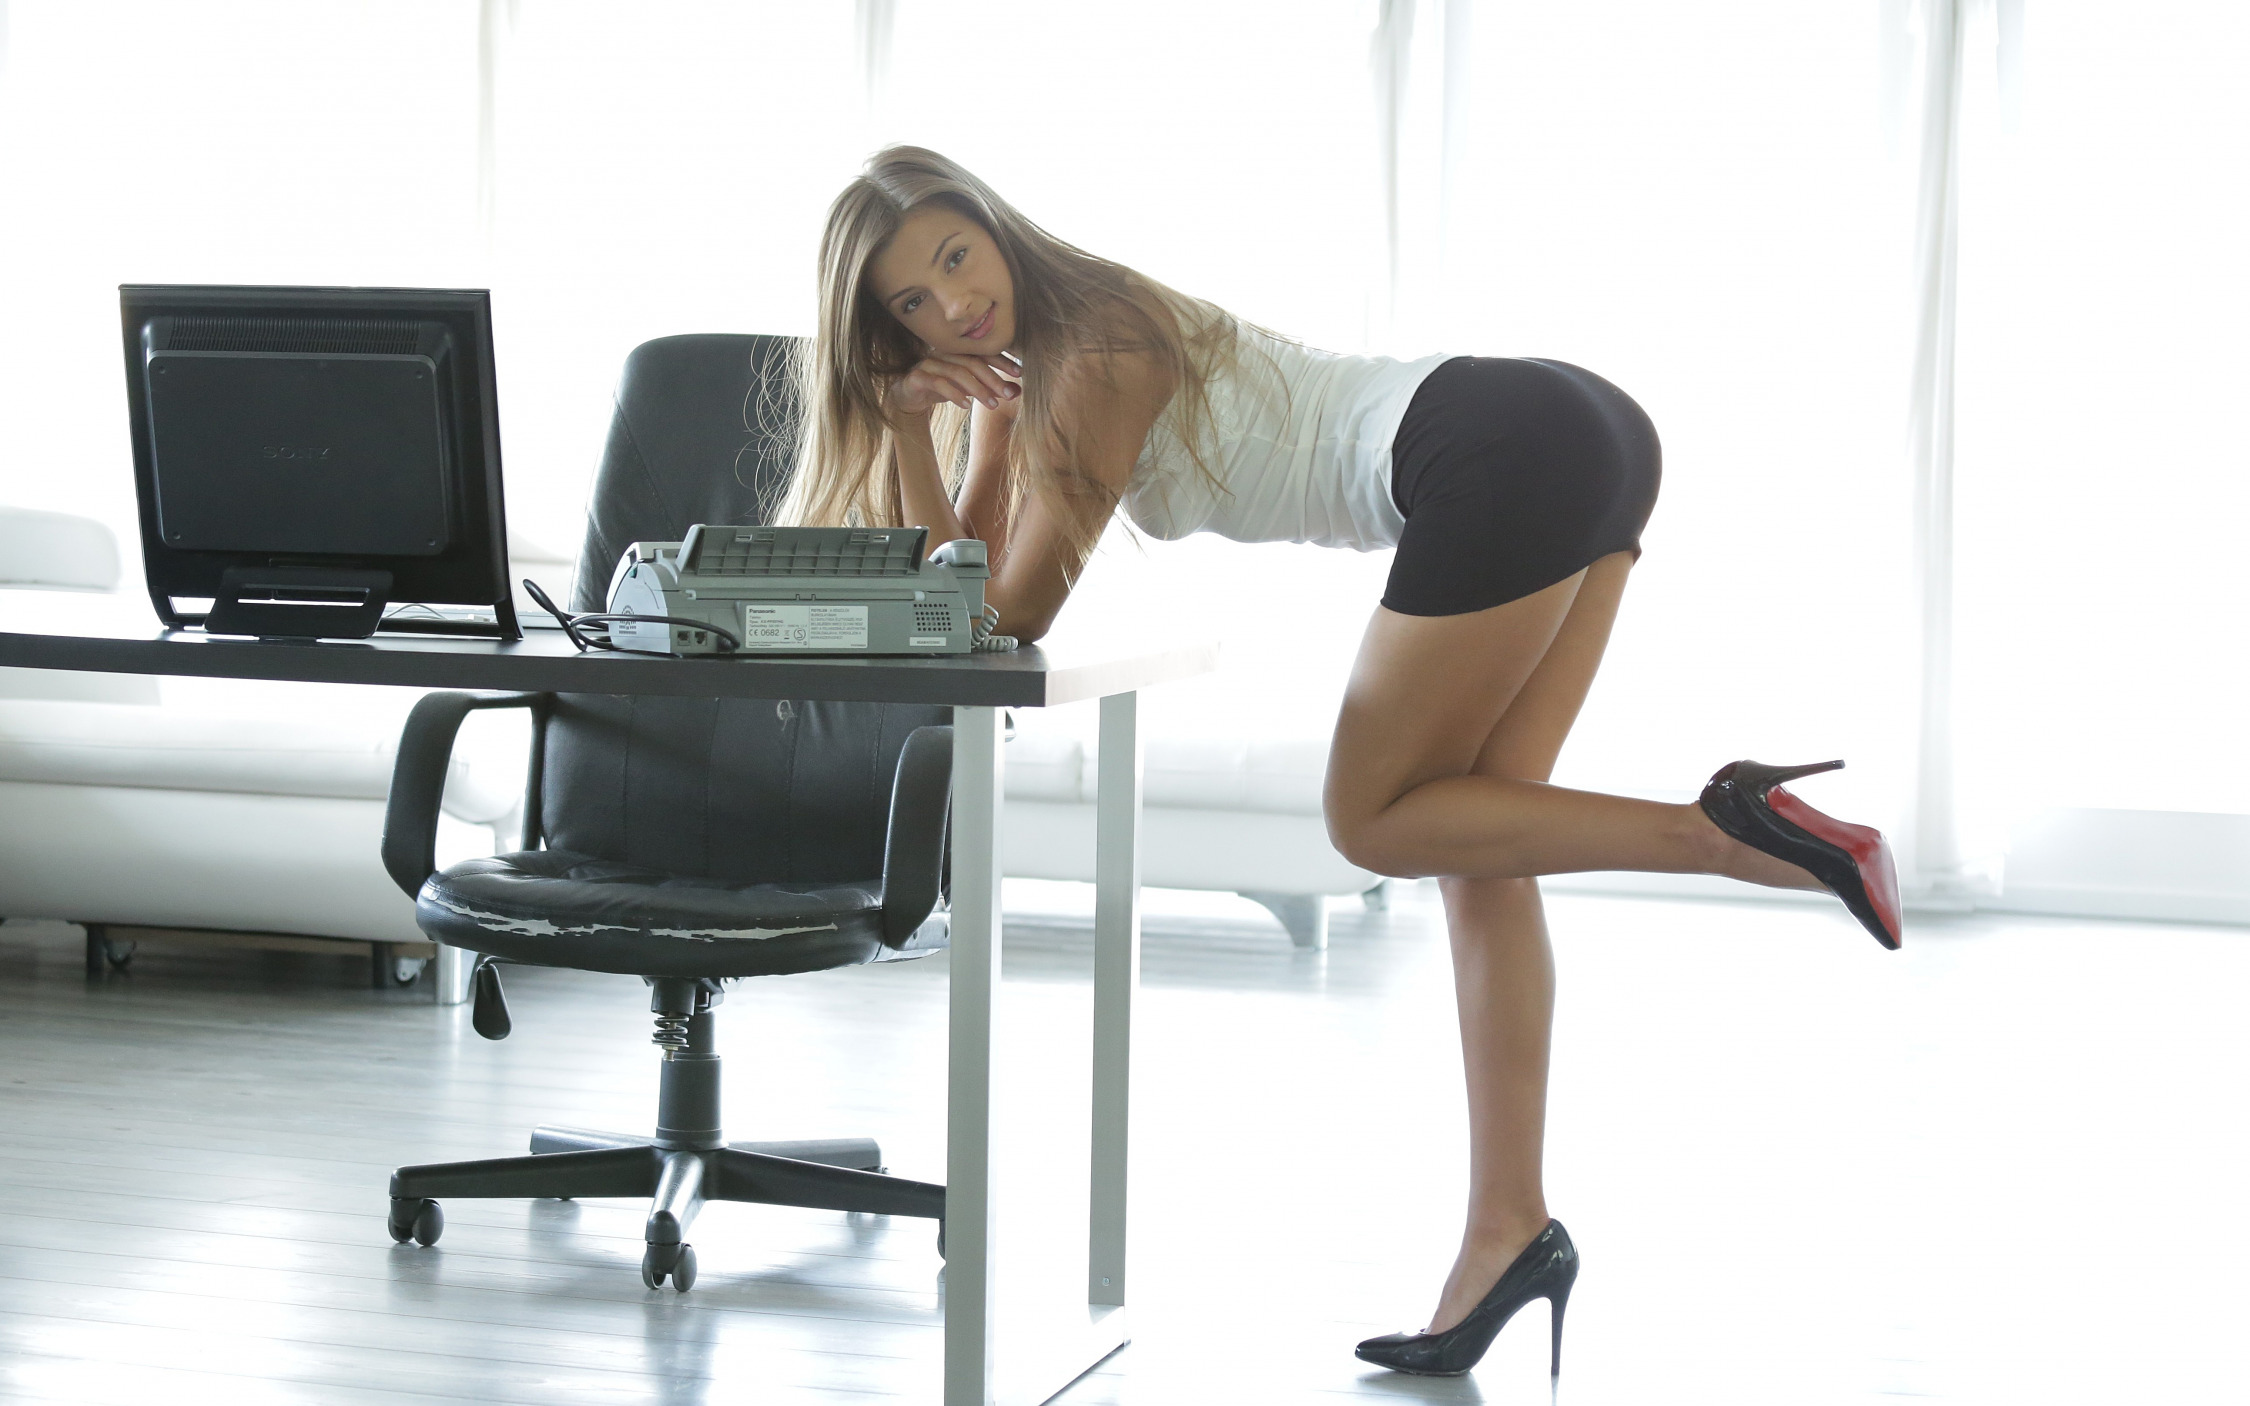 Outstanding babes at the office are giving many wet blowjobs № 574723 загрузить